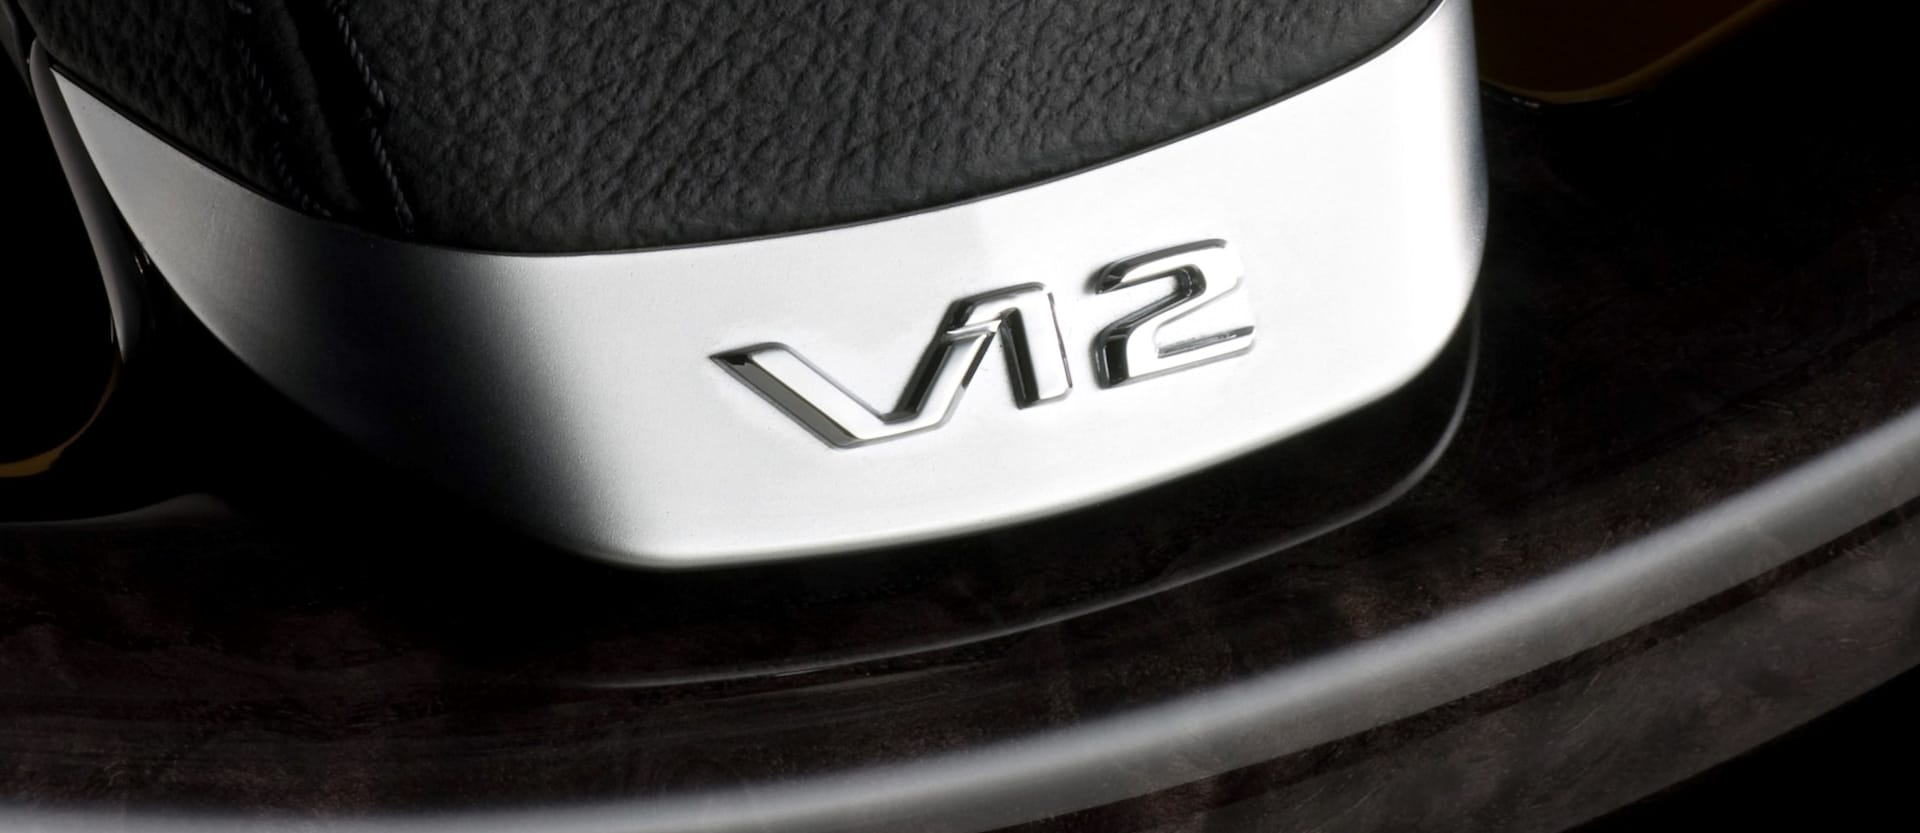 2016 Detroit Auto Show: Silent AMGs coming, V12 under threat